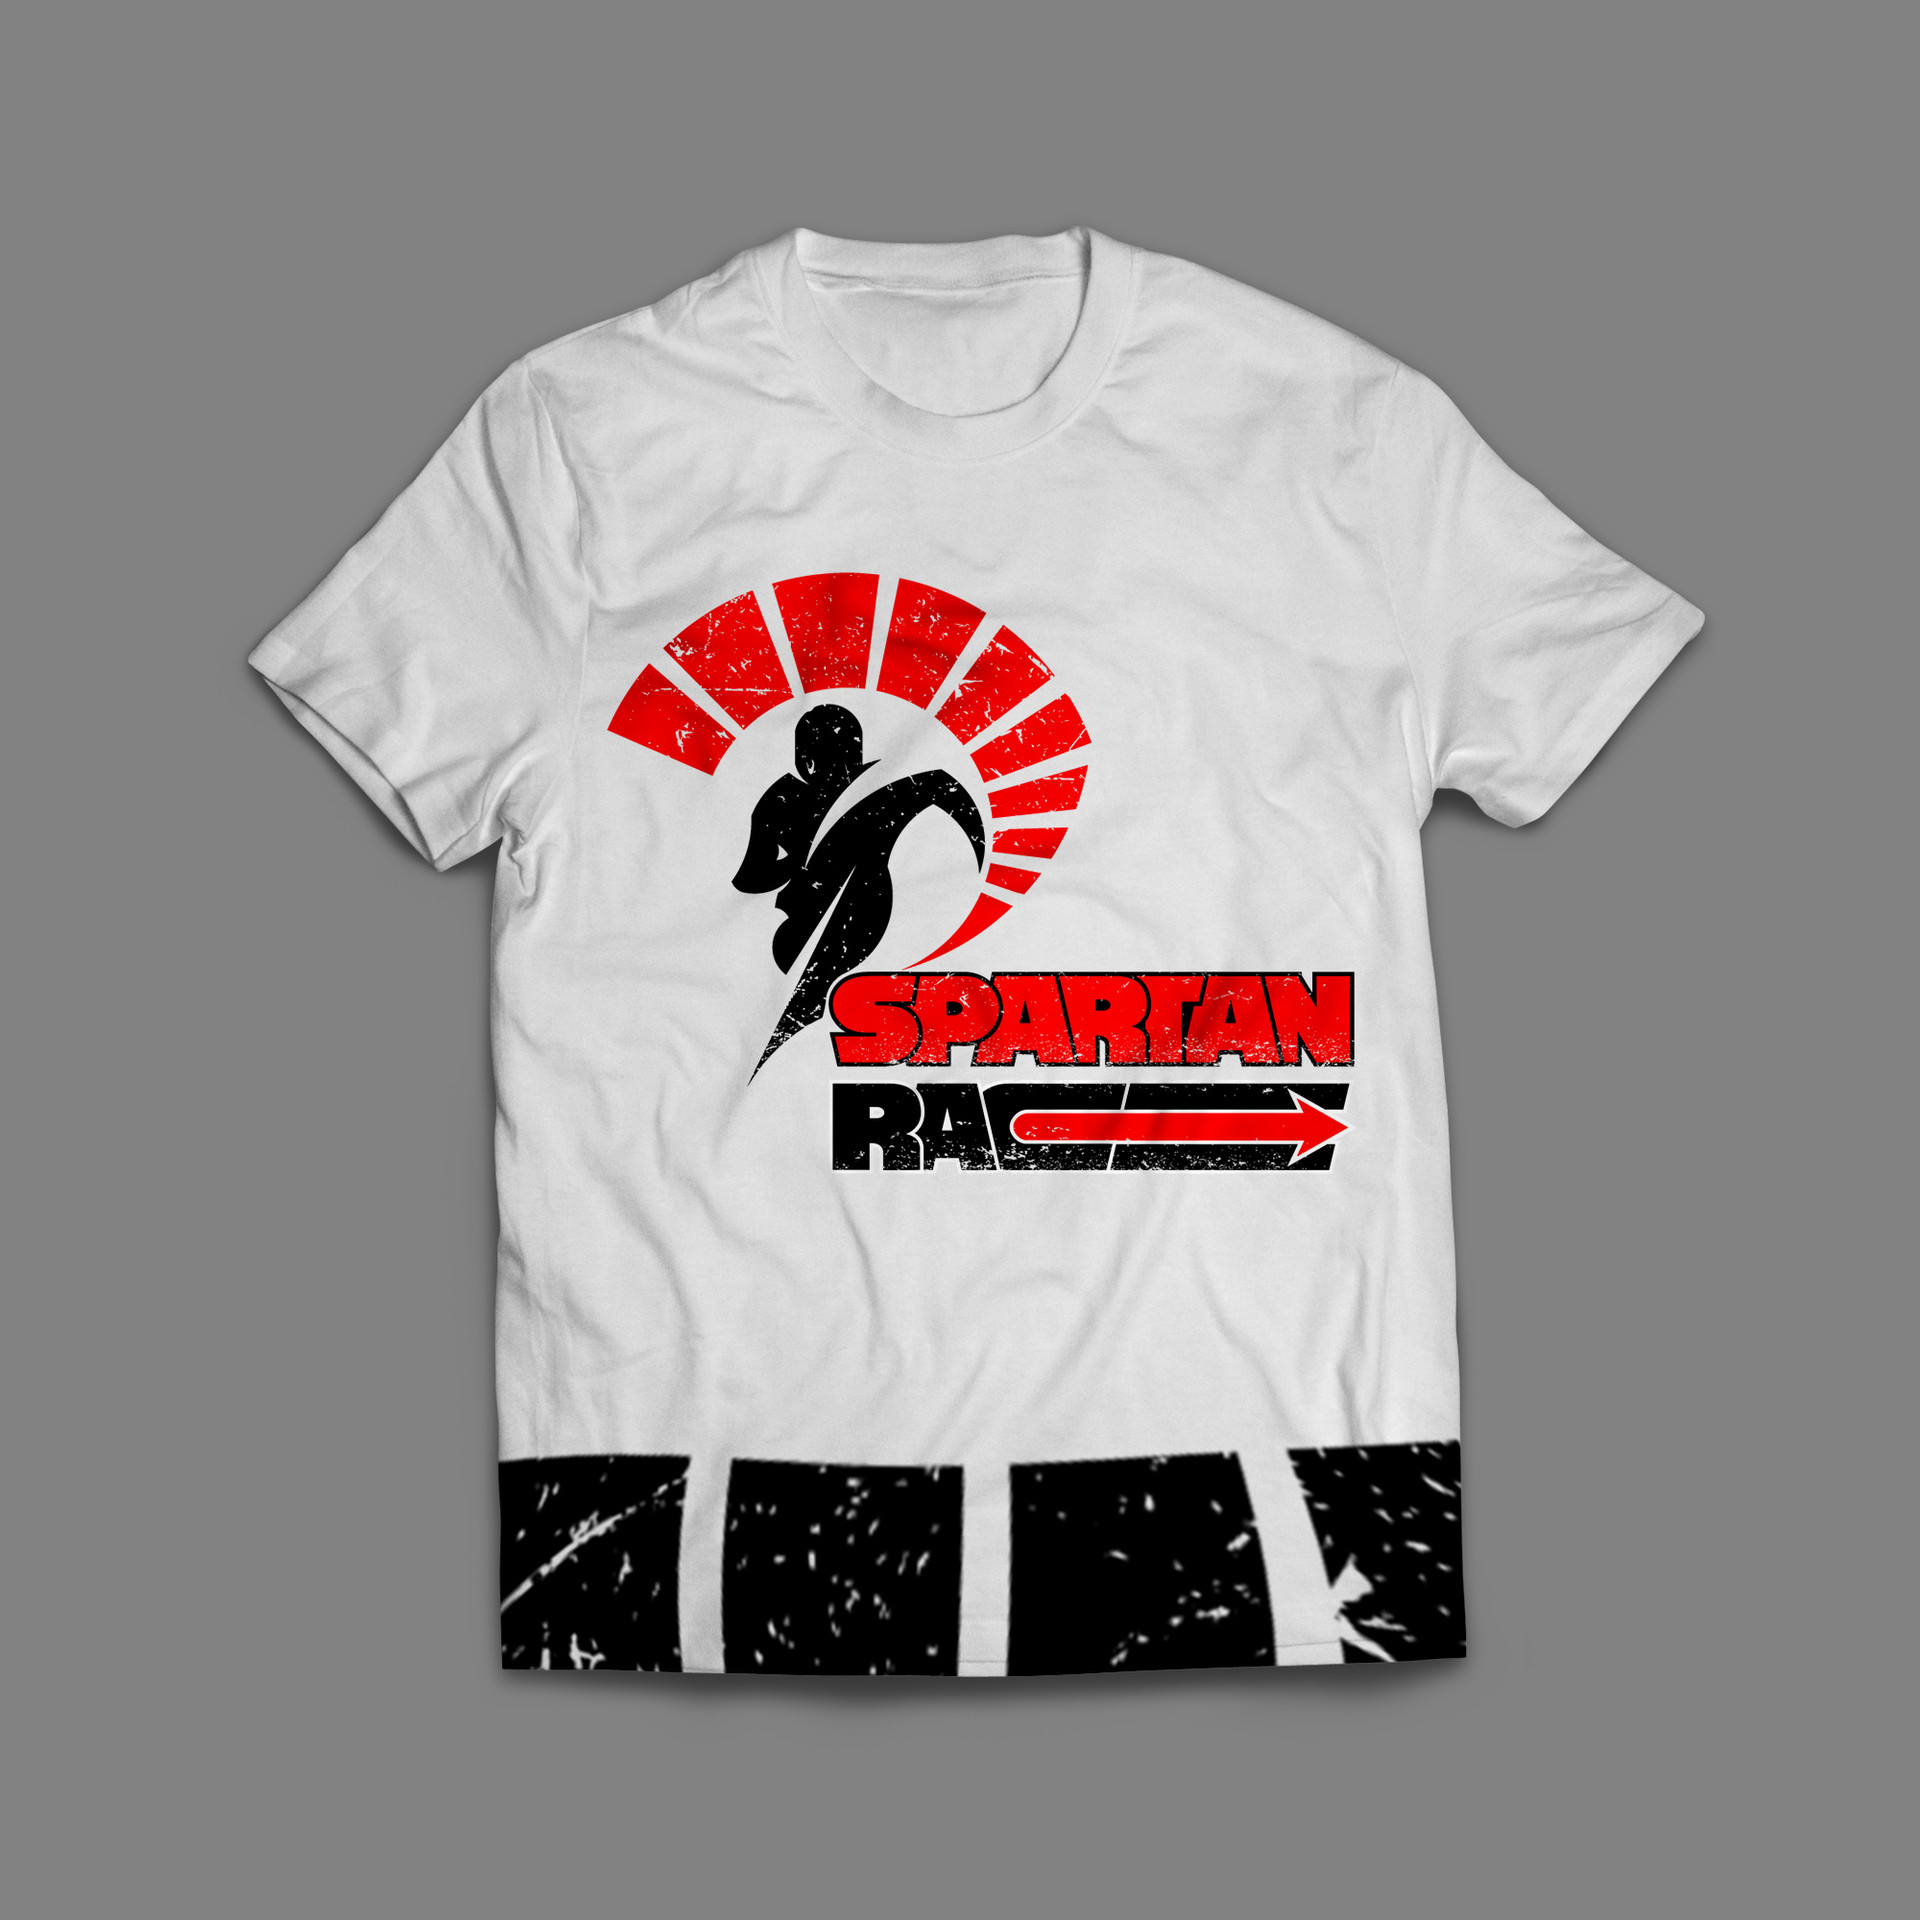 Richard t white jr spartanrace tshirtmockup 03